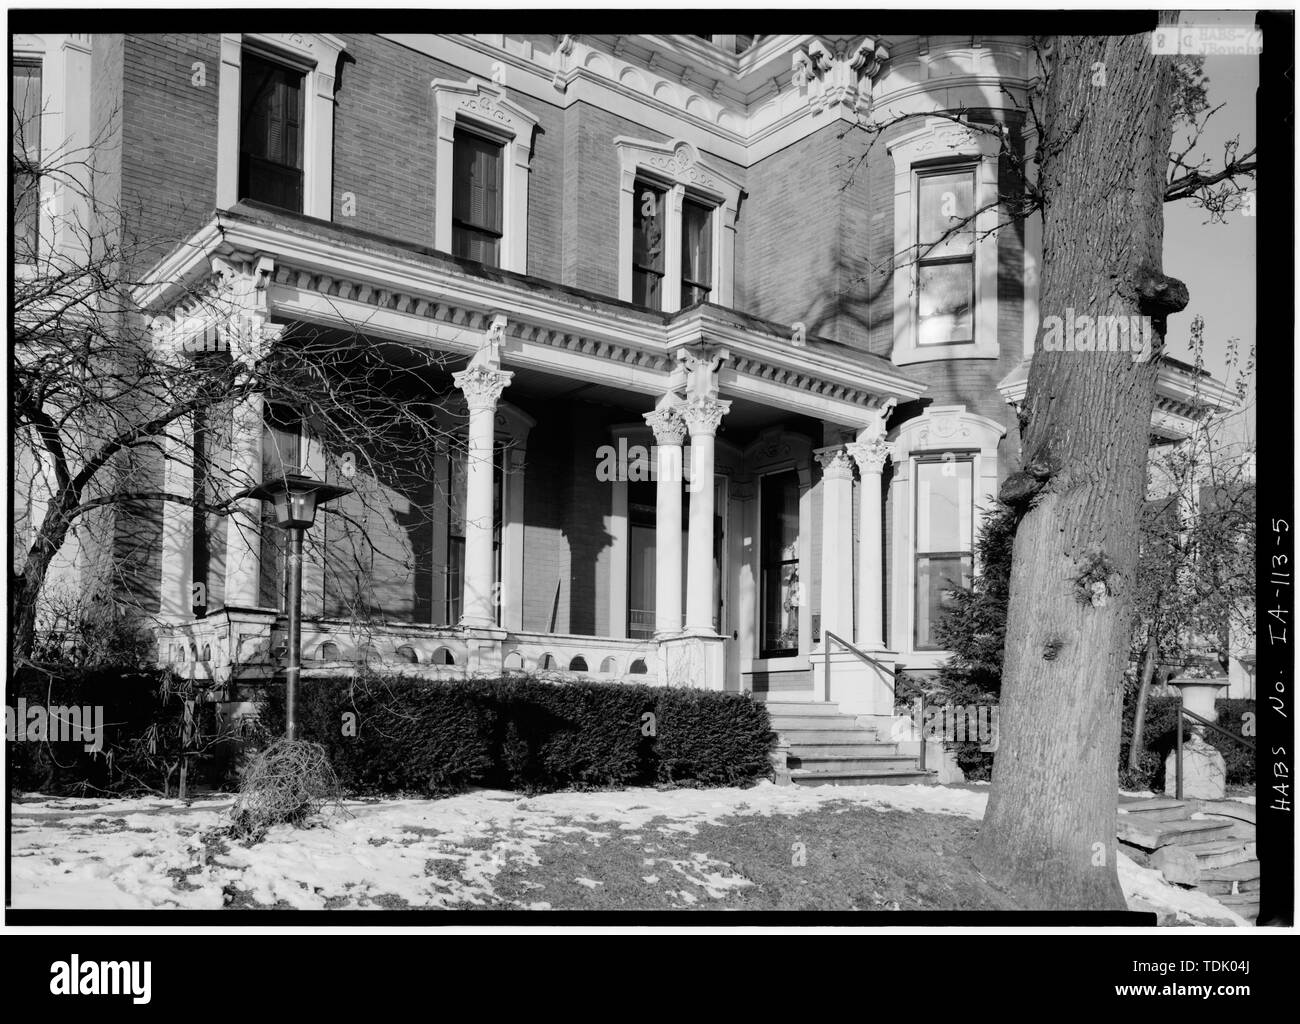 OBLIQUE VIEW FROM SOUTHEAST OF EAST FRONT PORCH - J. Monroe Parker House, Main and Twelfth Streets, Davenport, Scott County, IA - Stock Image